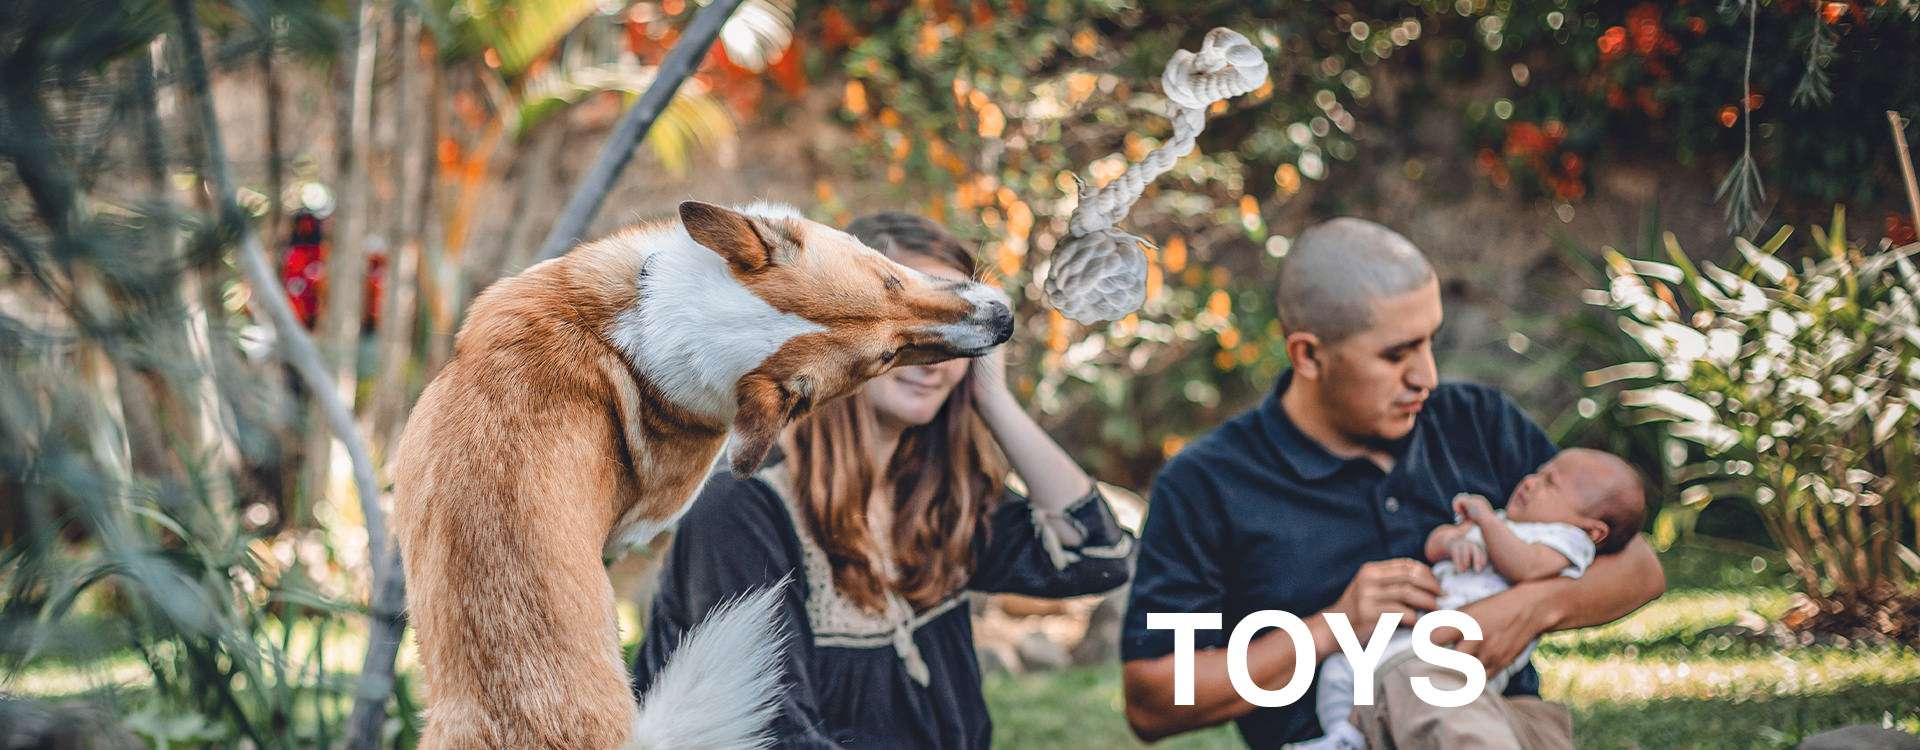 """Brown and white dog leaps in the air to catch a natural cotton dog fetch toy while a father soothes his baby with overlaid text: """"TOYS"""""""